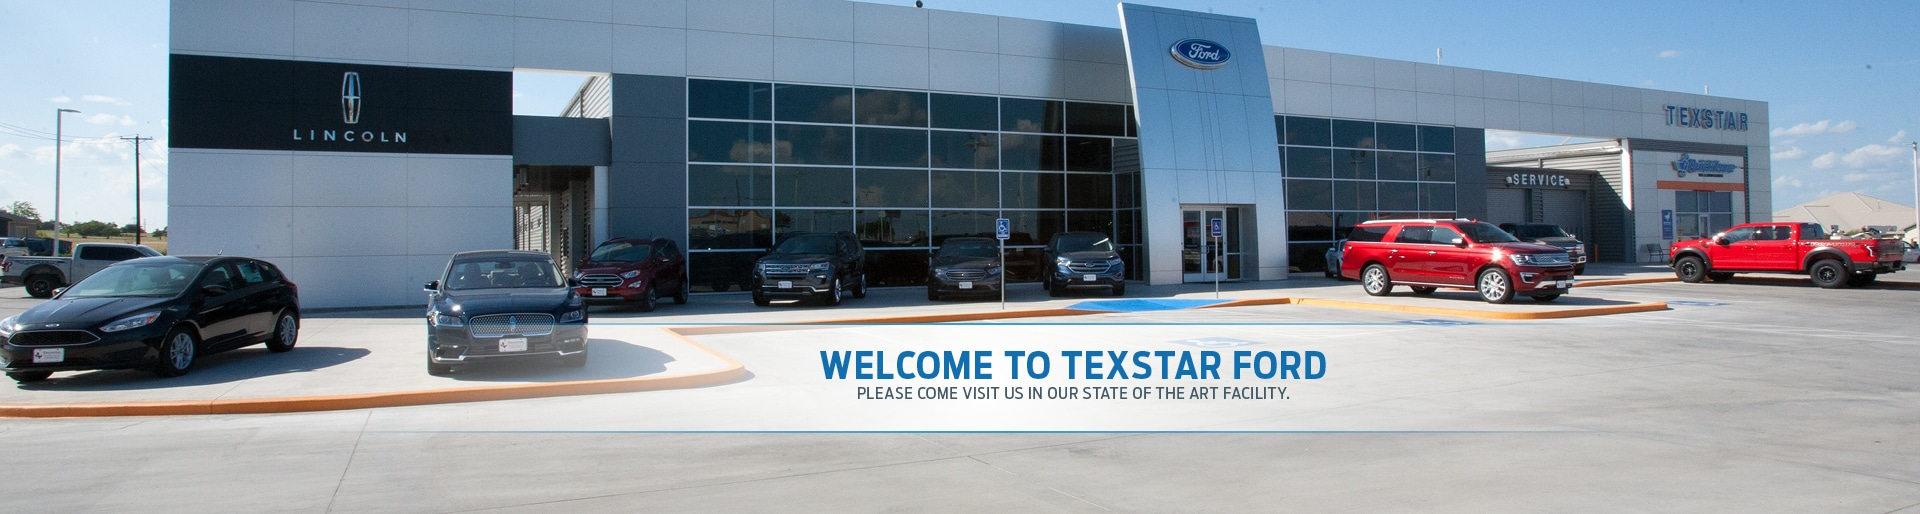 Stephenville s Texstar Ford Lincoln Inc.  8df52370c5a78